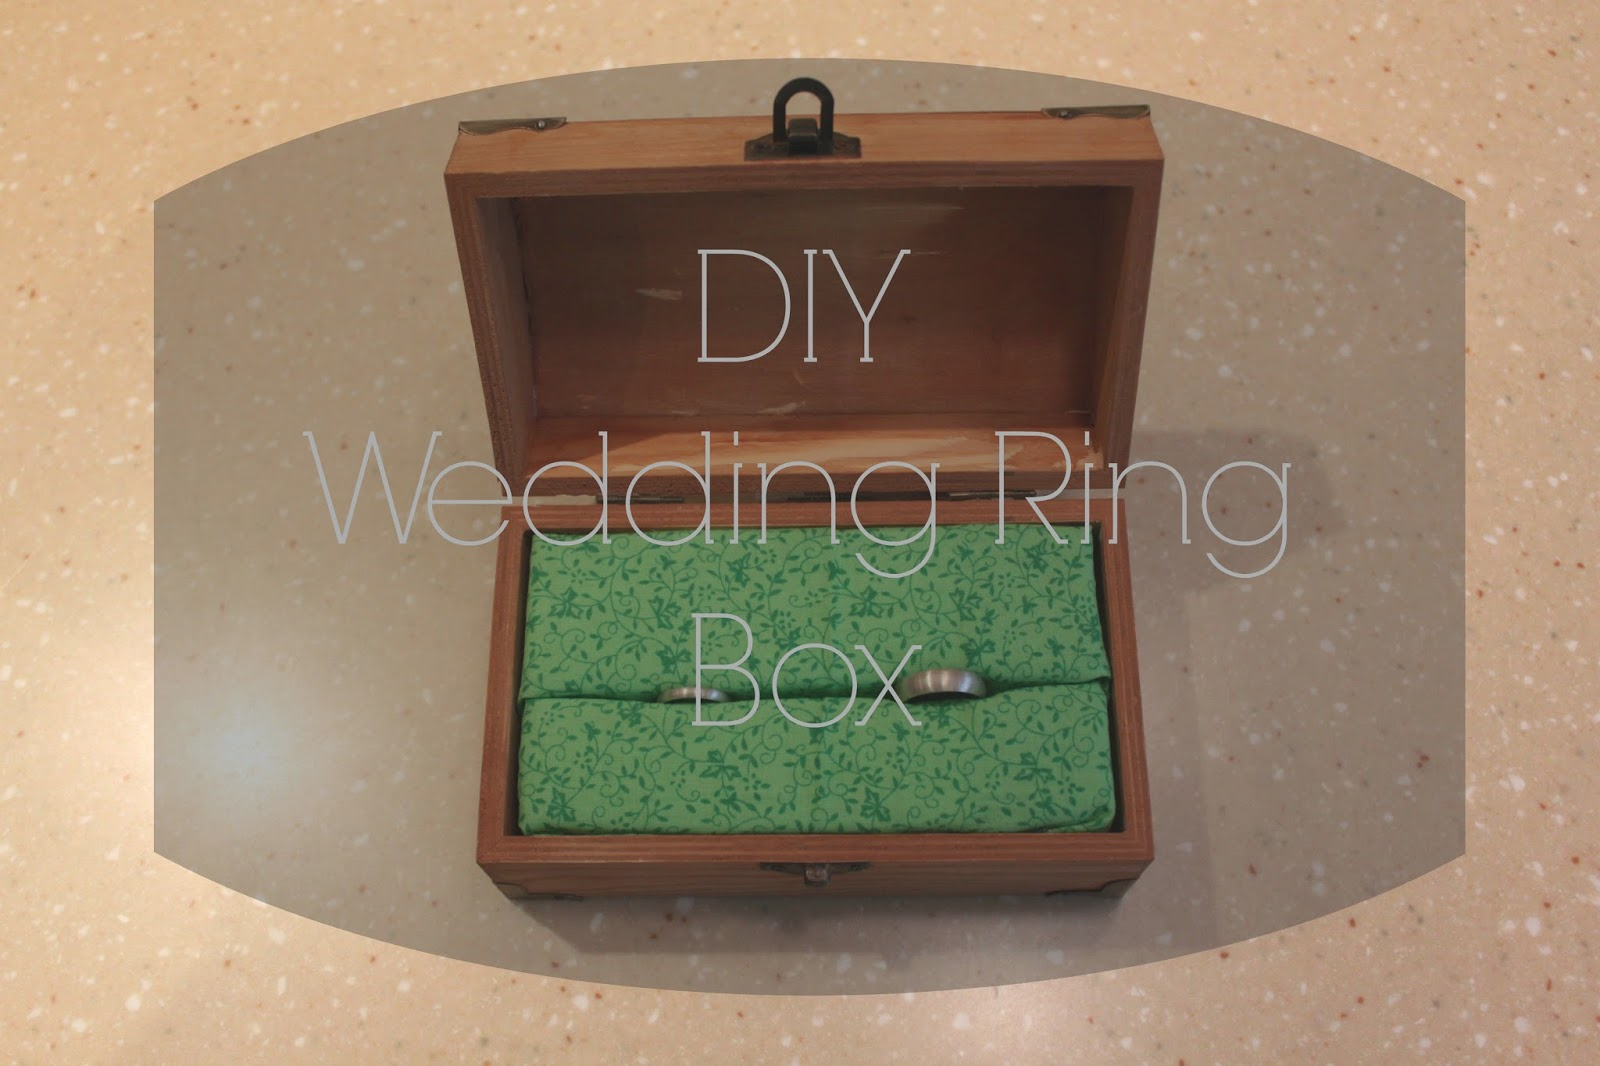 Camp Girl in the Real World DIY Wedding Ring Box